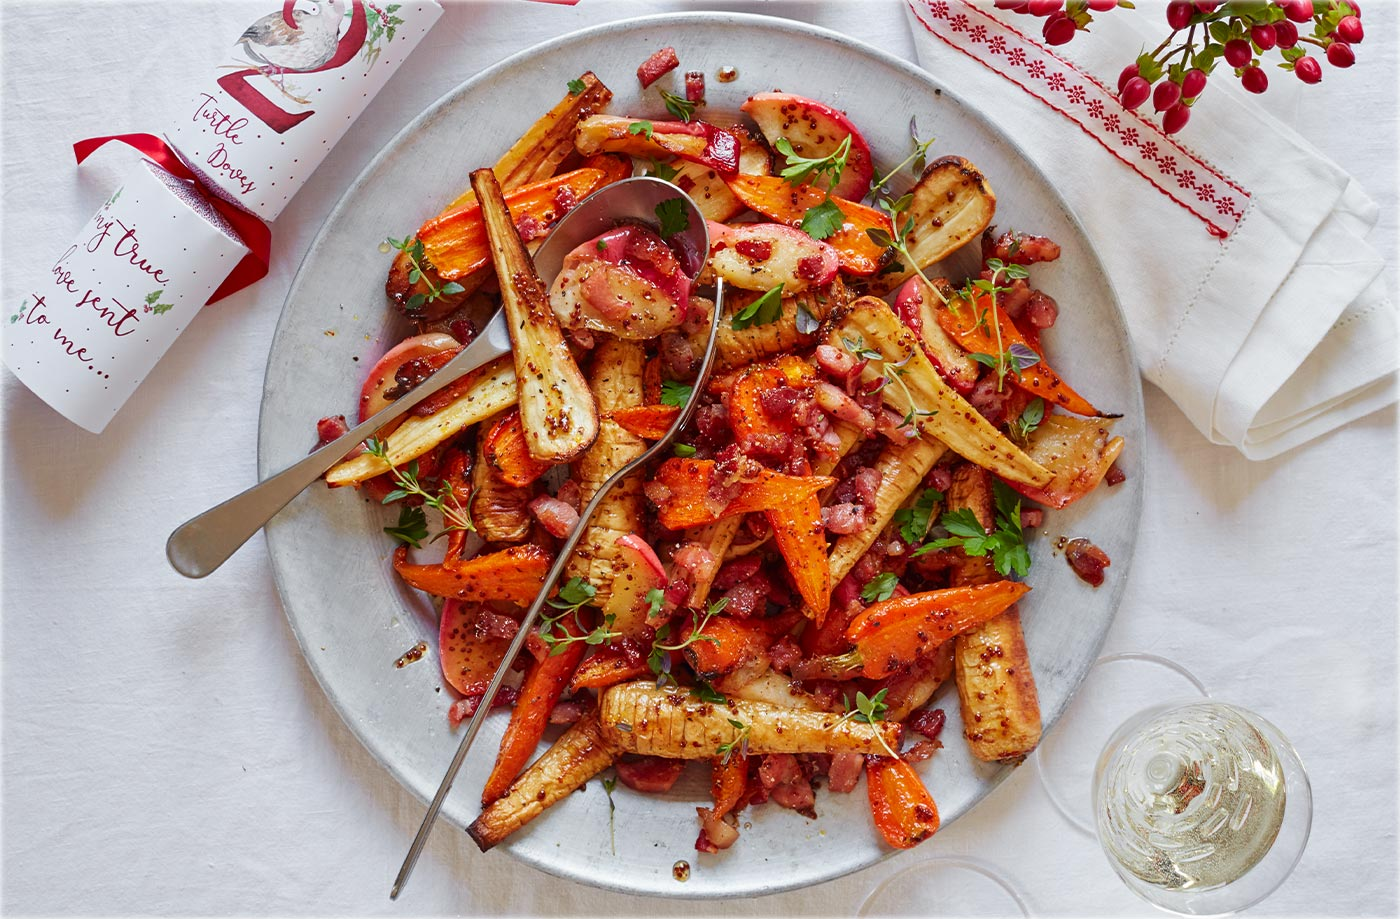 Roasted carrots and parsnips with bacon and apples recipe